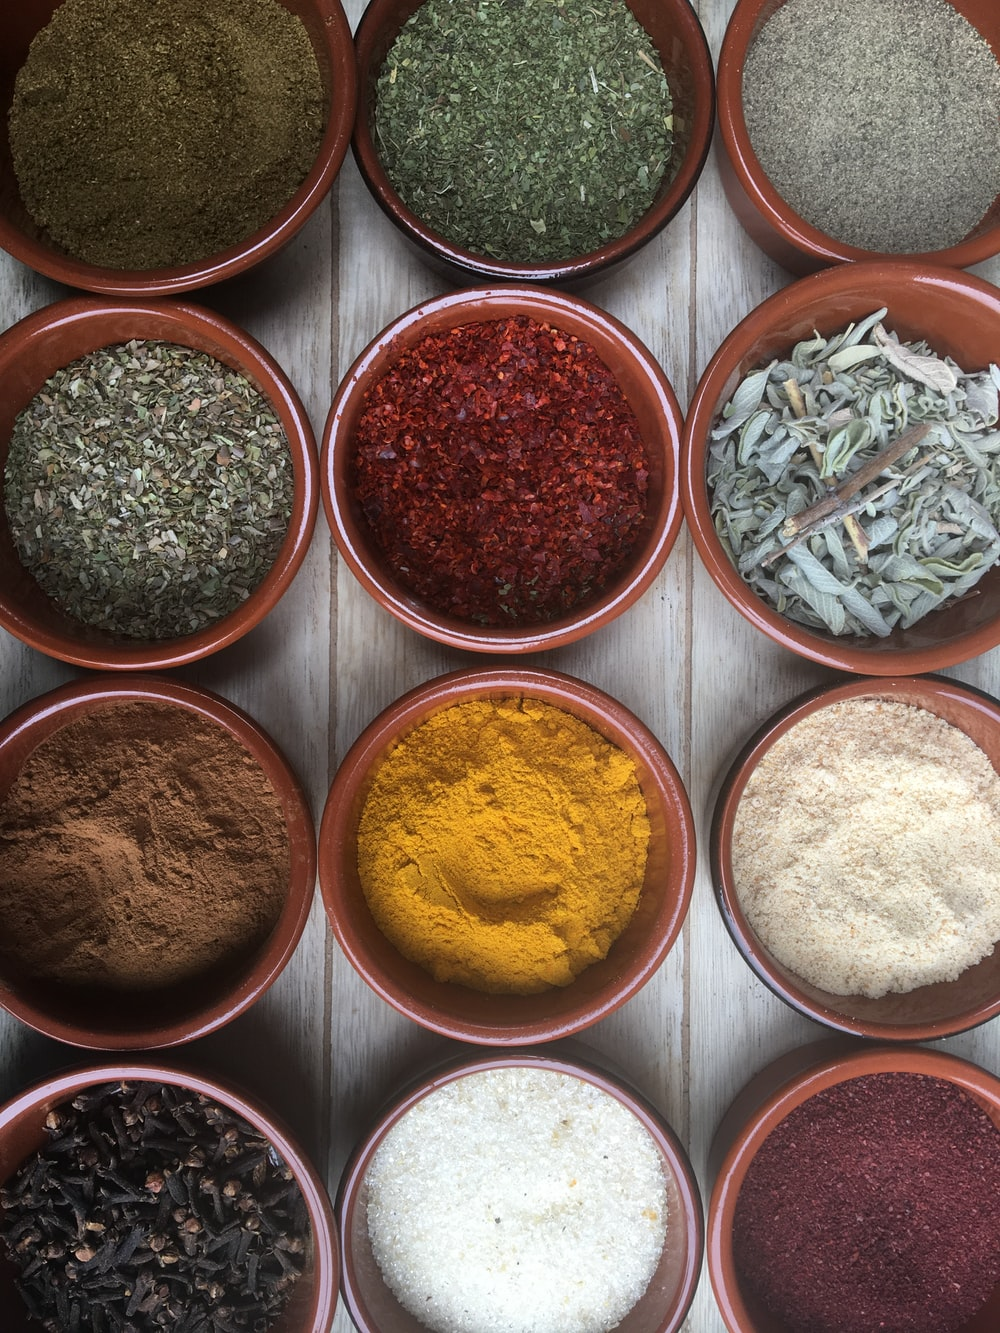 assorted spices in clear glass containers